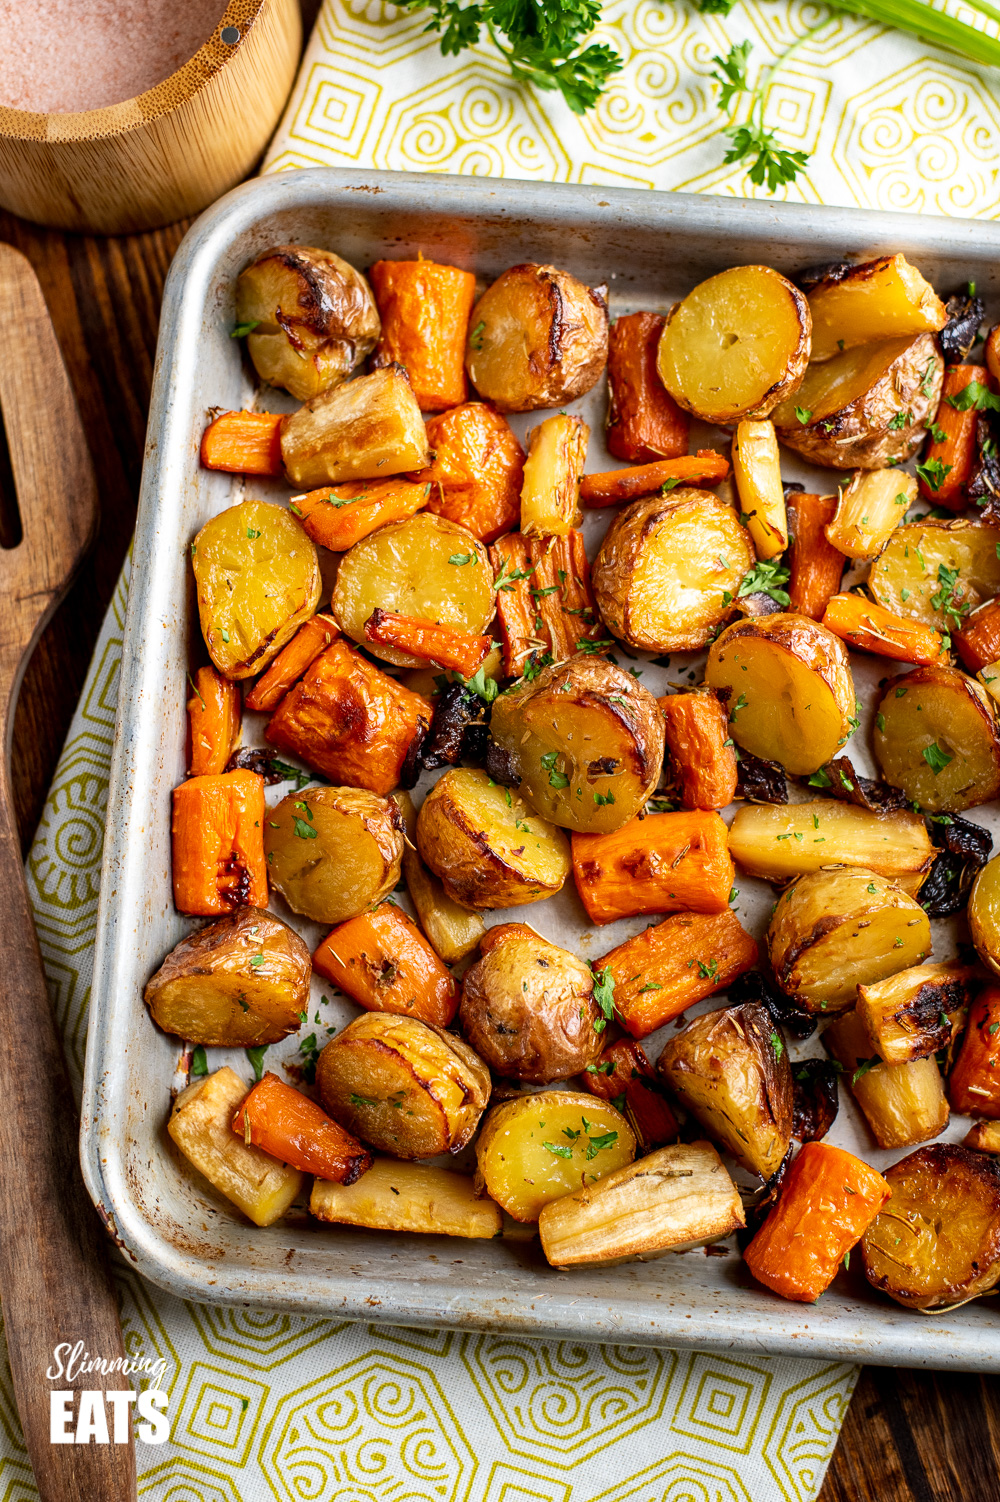 Rosemary Roasted Potatoes, Parsnips, Carrots and Onion on baking tray on wooden board with green pattern tea towel